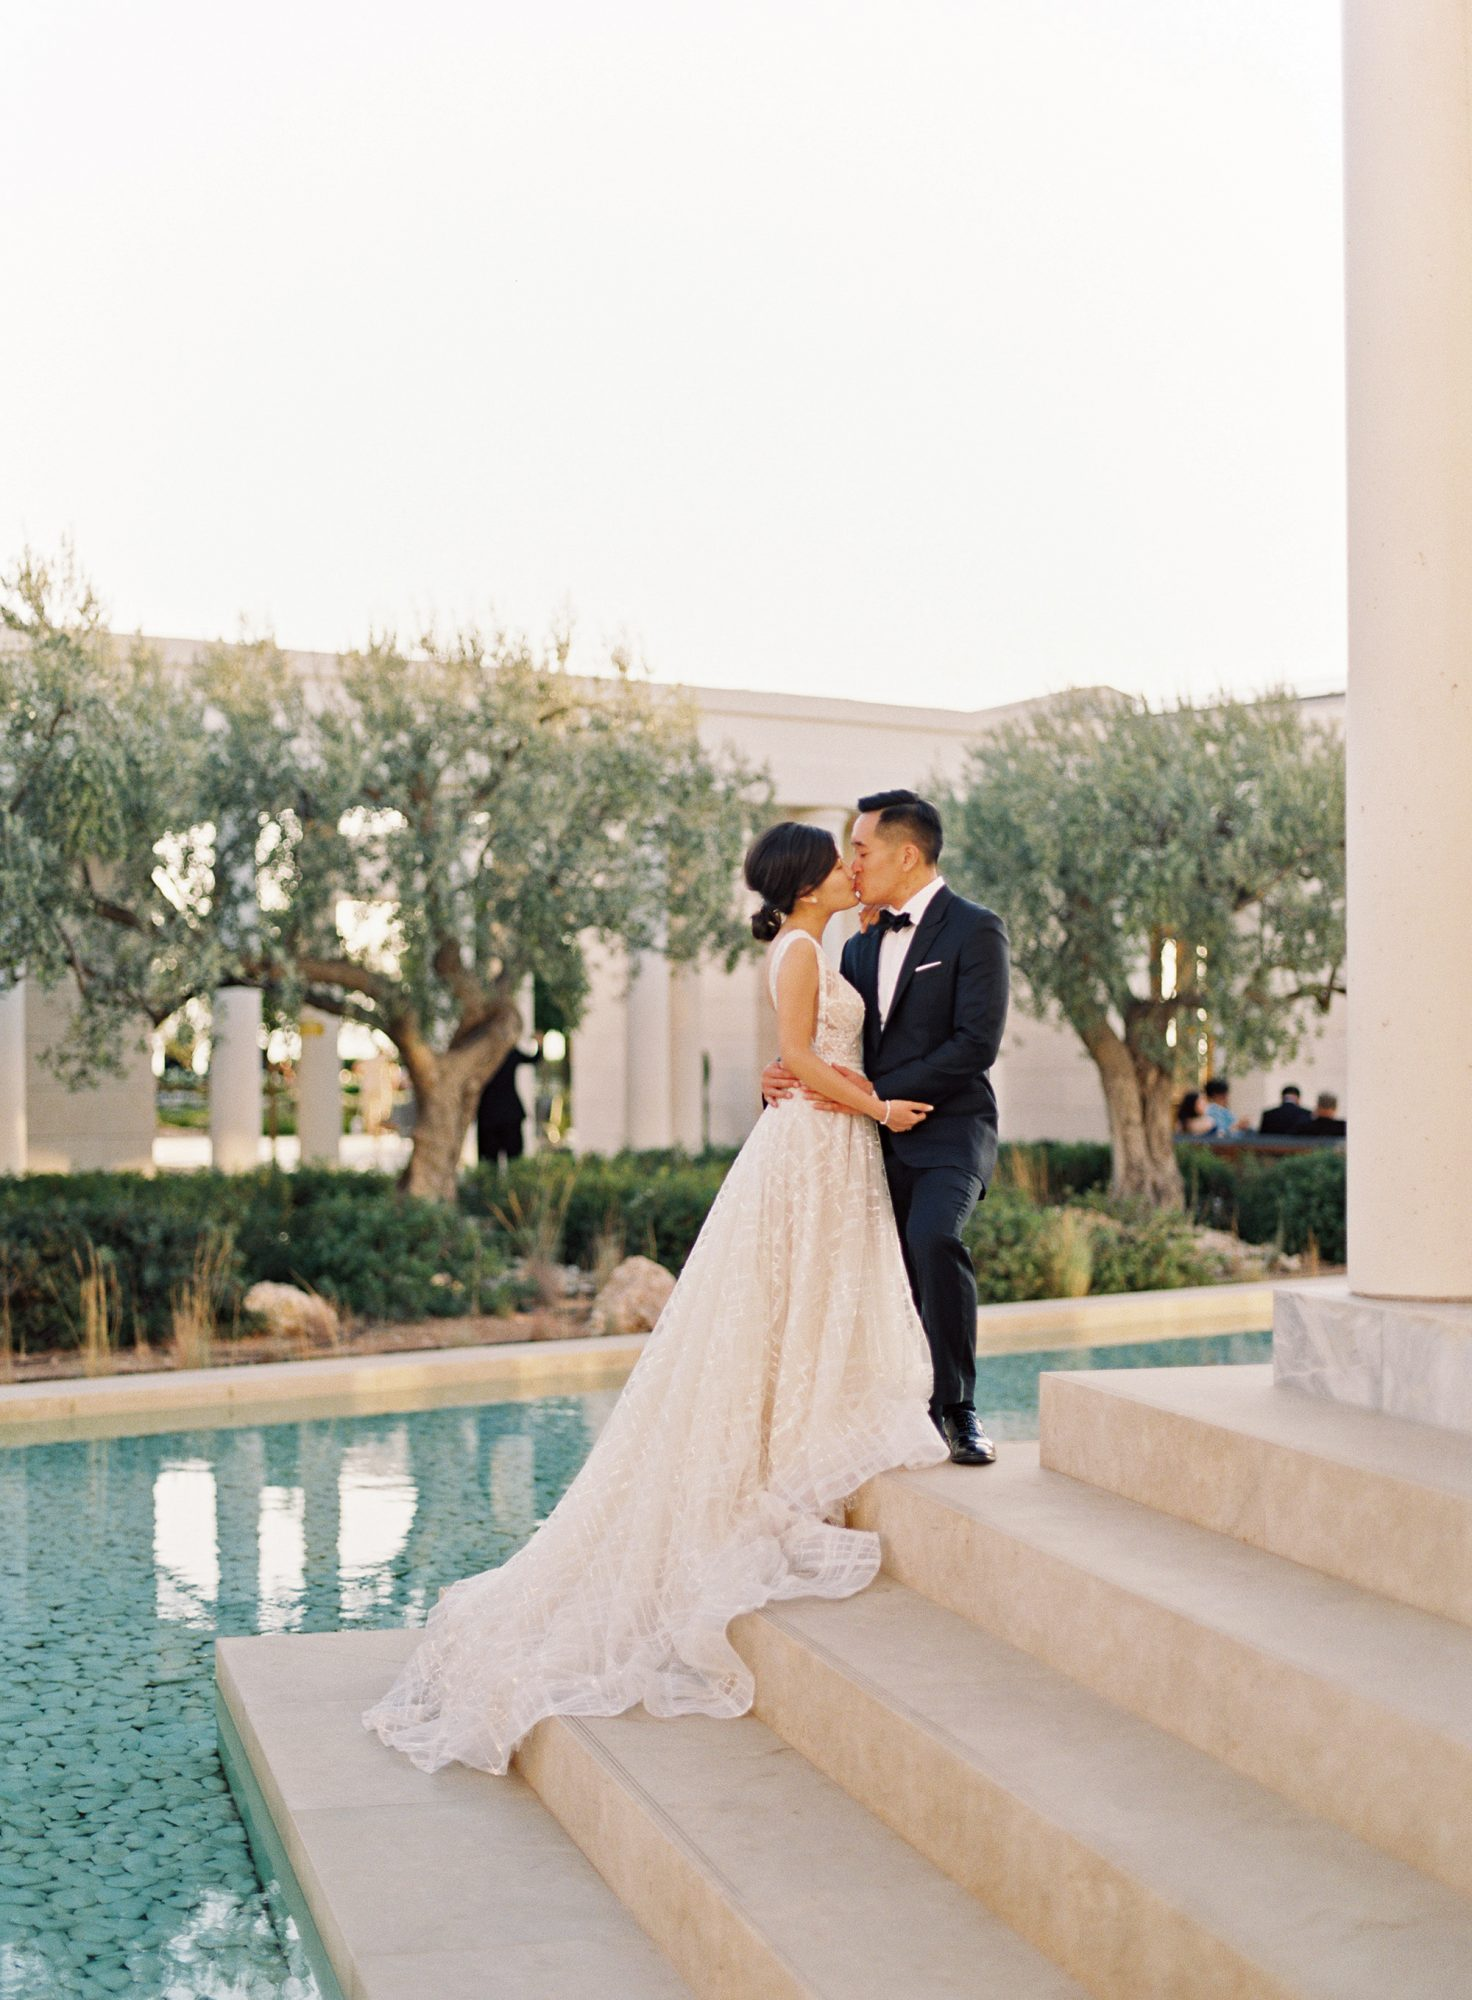 sze amanzoe wedding couple greece elegant